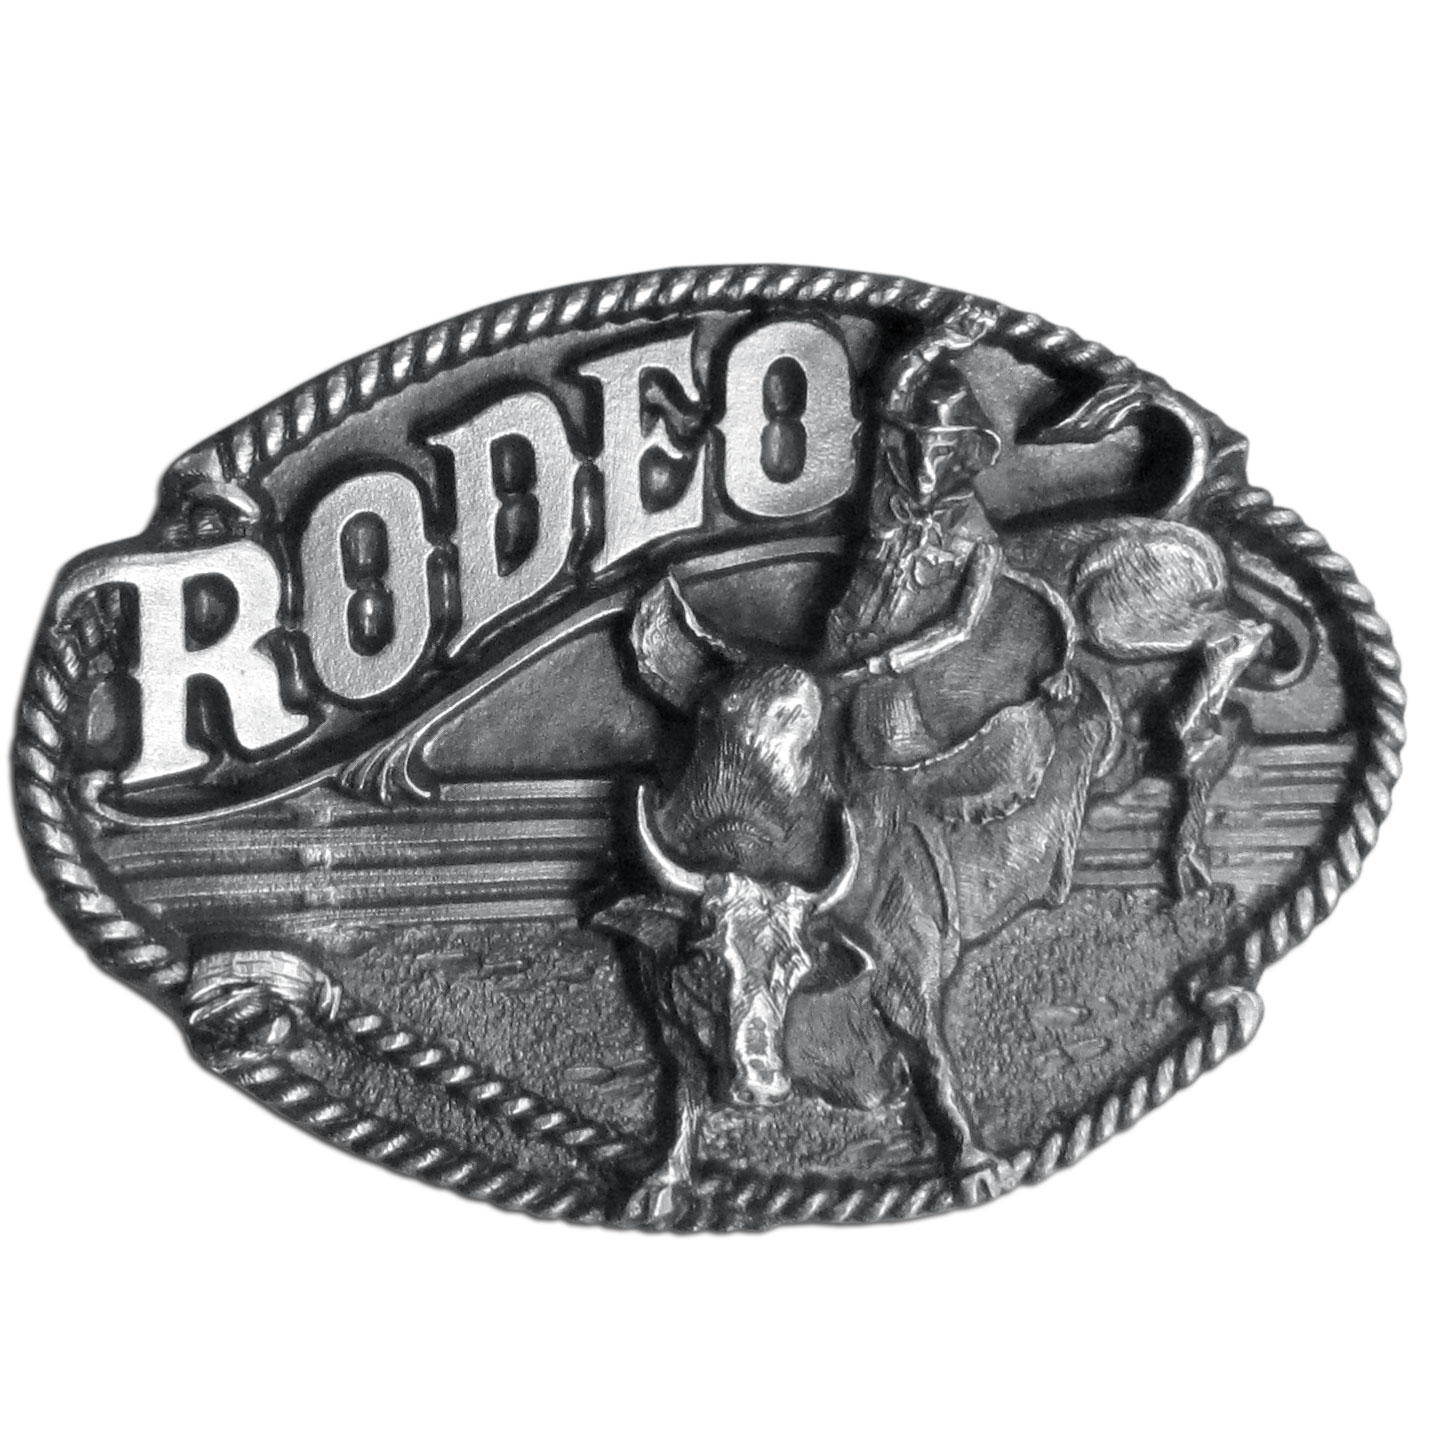 "Rodeo Bull Rider Antiqued Belt Buckle - ""This belt buckle celebrates the Rodeo!  """"Rodeo"""" is written in bold across the top.  There is a cowboy riding a bull in the center of an arena with fencing in the background and it is surrounded by a rope lasso.  This exquisitely carved buckle is made of fully cast metal with a standard bale that fits up to 2"""" belts."""